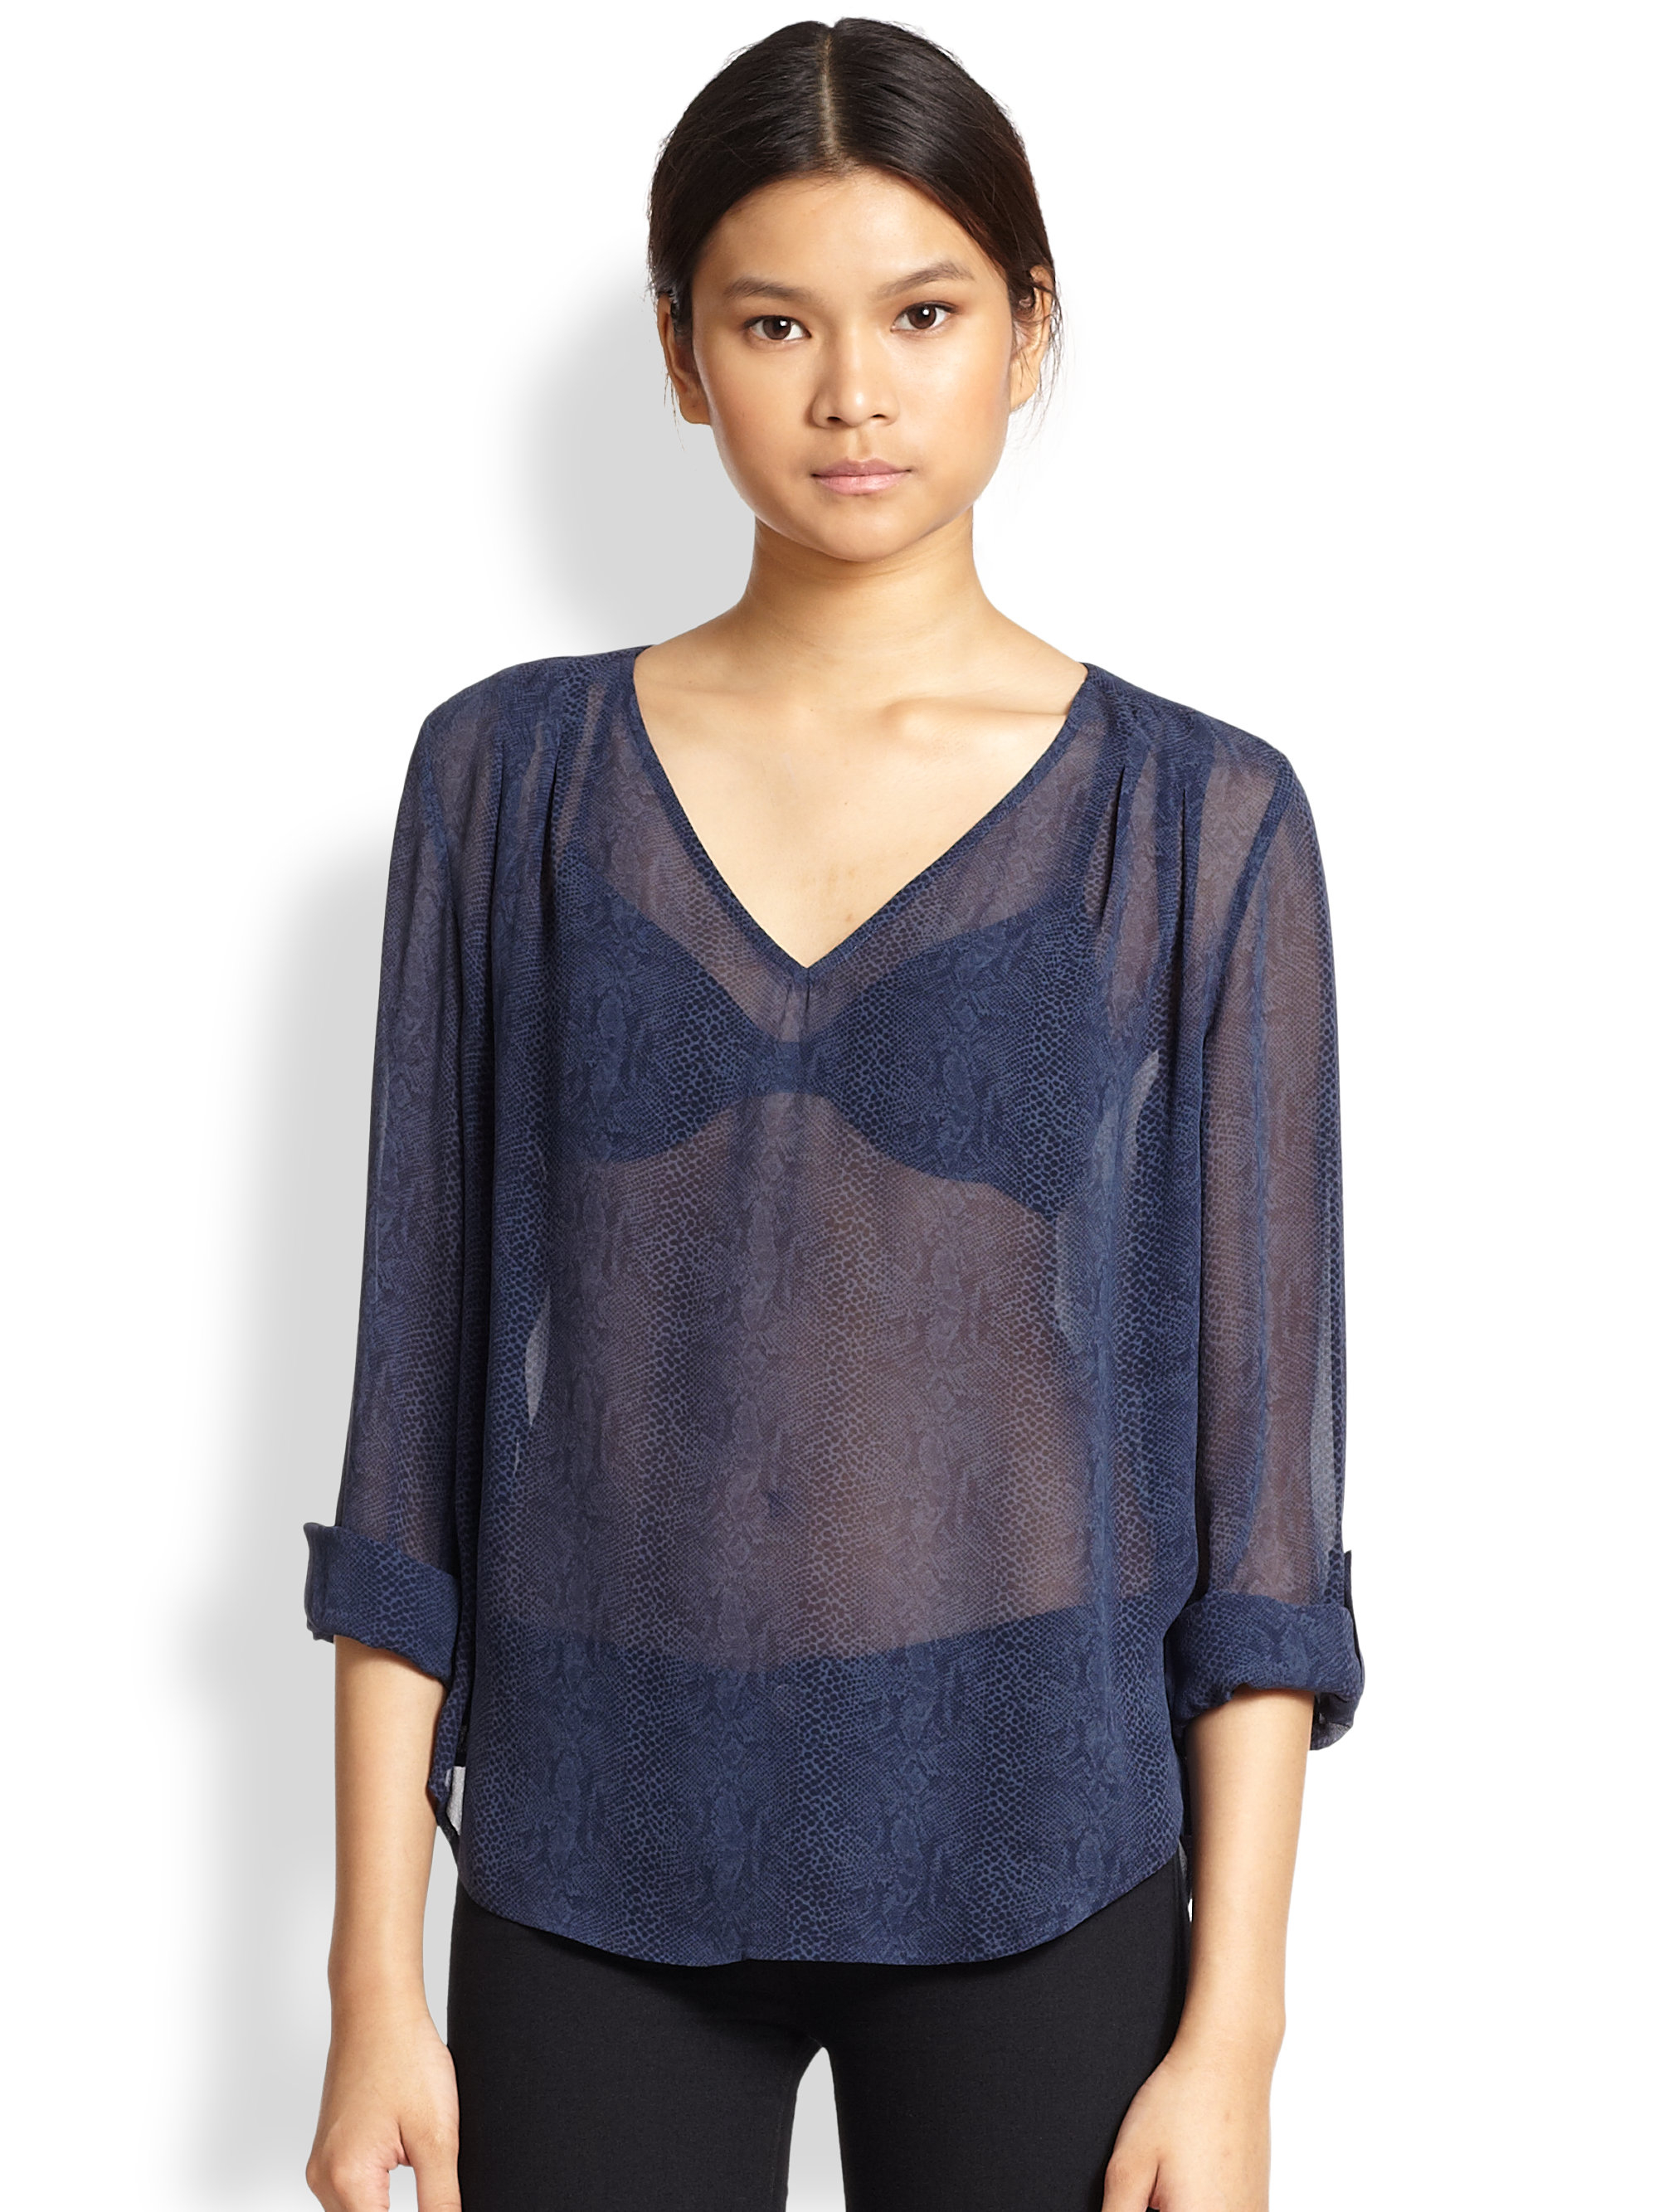 Find great deals on eBay for sheer blouse. Shop with confidence.